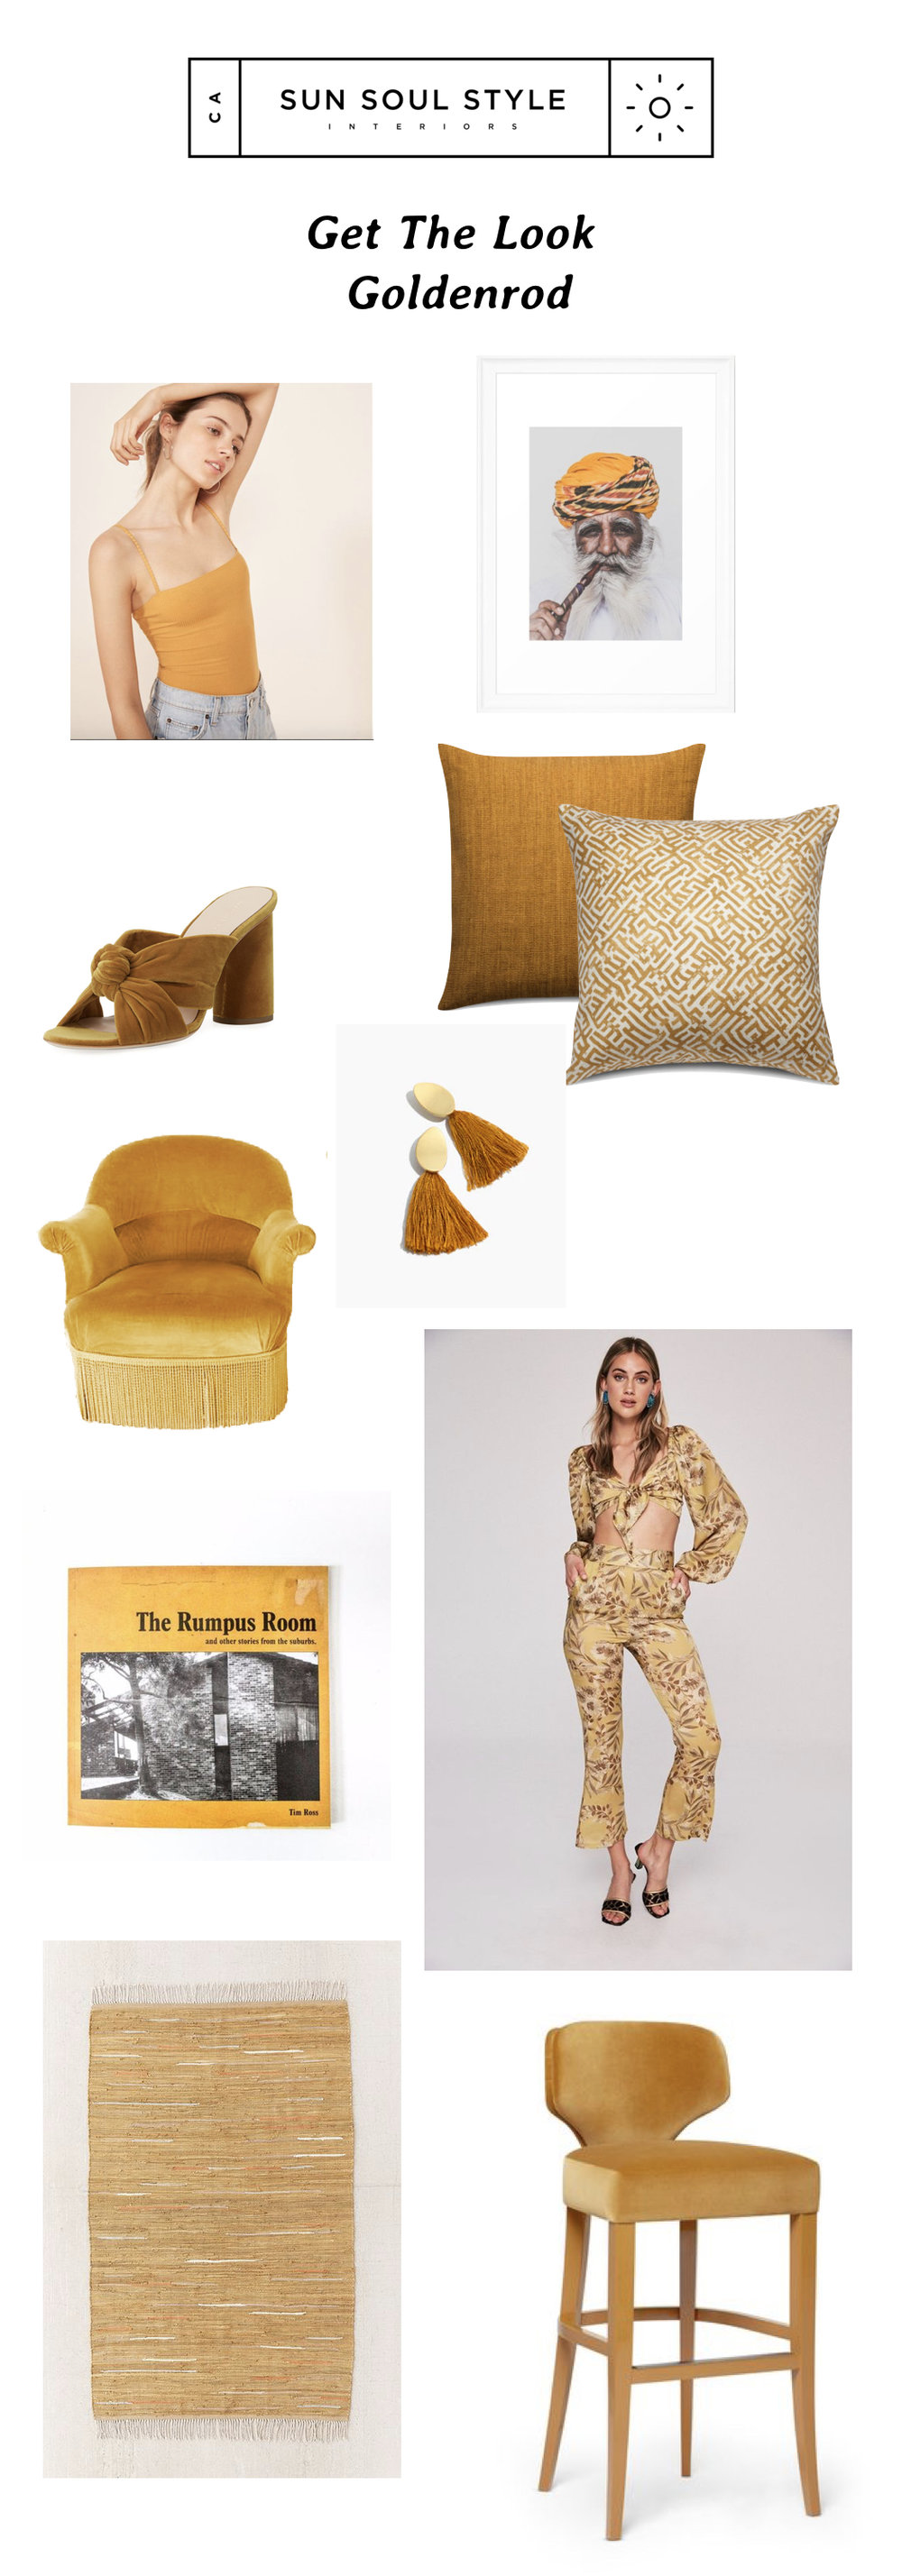 Clockwise from top:   Reformation Crystal Bodysuit  // Jodhpur Print  via Society6  // Pillows  via Zak and Fox  // tassel earrings  via Madewell  // Isla trousers and Haven crop  via Stone Cold Fox  // Velvet Stool  by Munna  // Rug  via Urban Outfitters  // The Rumpus Room  via Pop and Scott  // Antique Chairs  via 1st Dibs  //  Loeffler Randall  Coco Velvet Slide